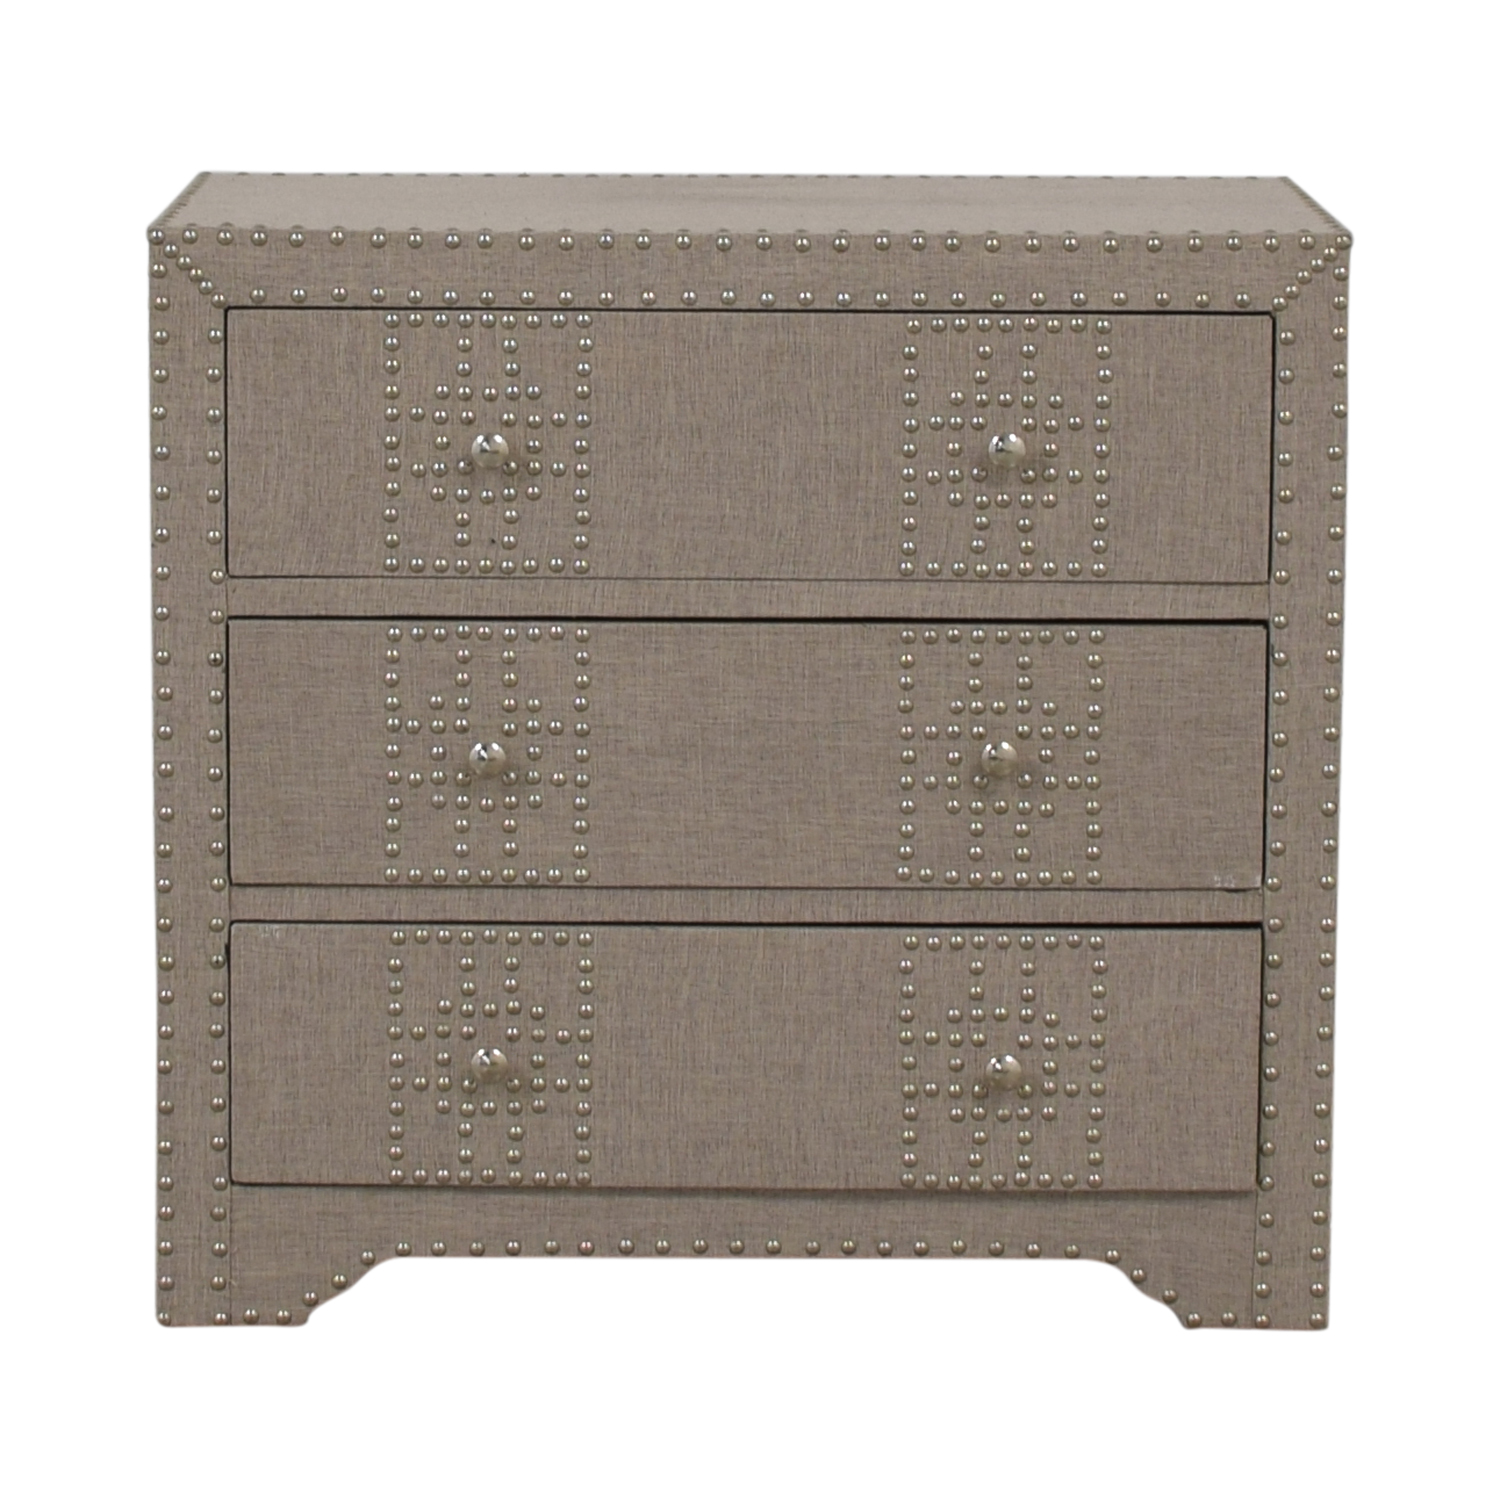 Wayfair Wayfair Gordy Grey Upholstered Nailhead Three-Drawer Dresser used